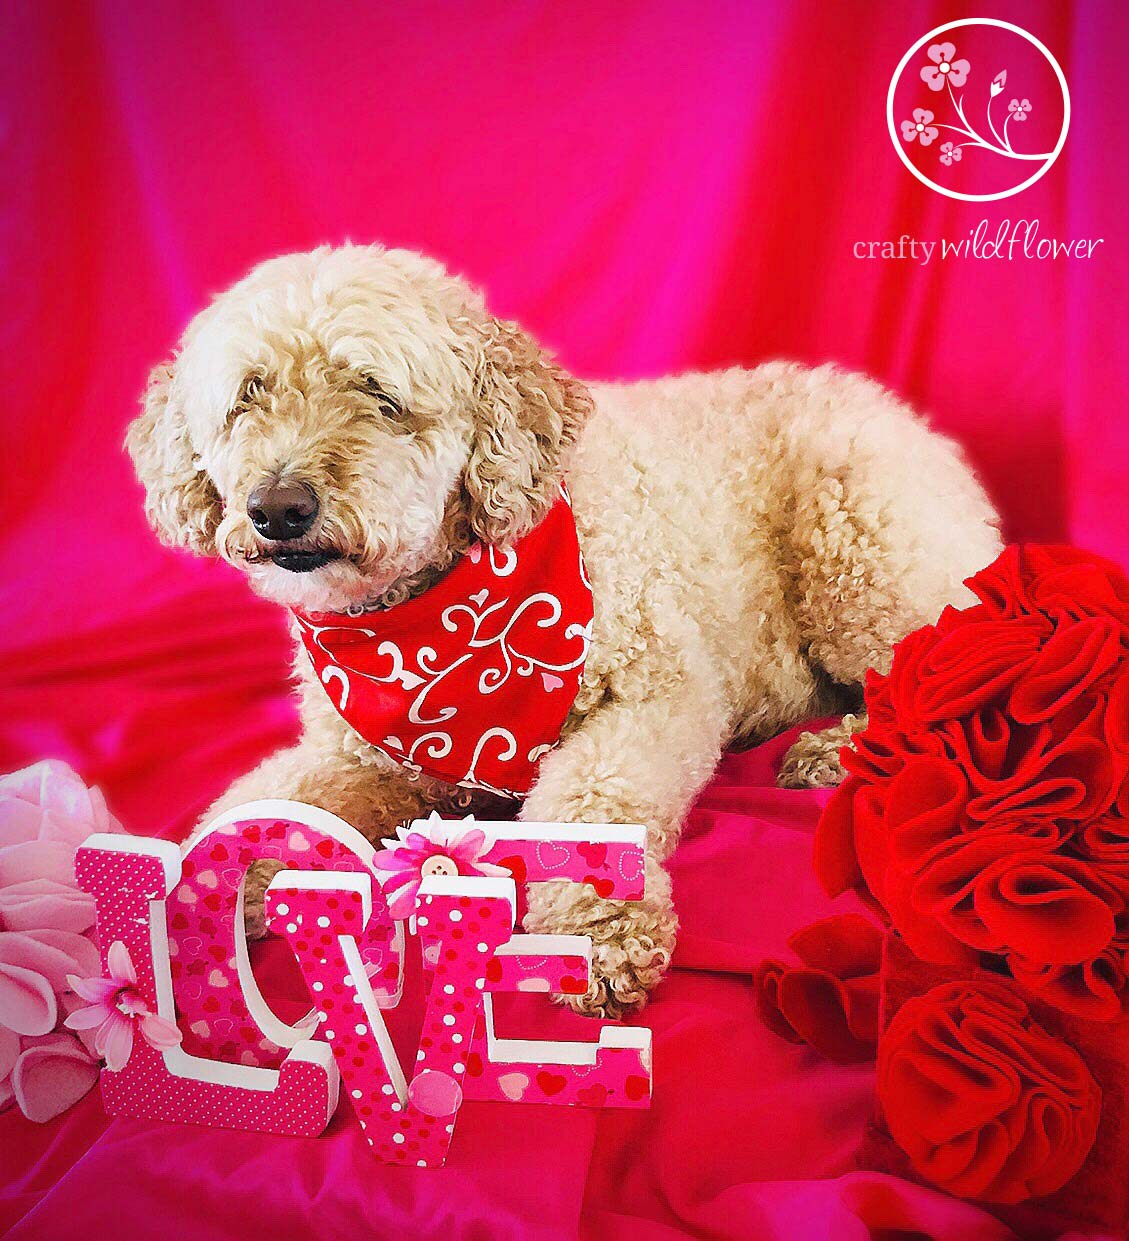 Happy Valentines Day From Logan and CraftyWildflower.com